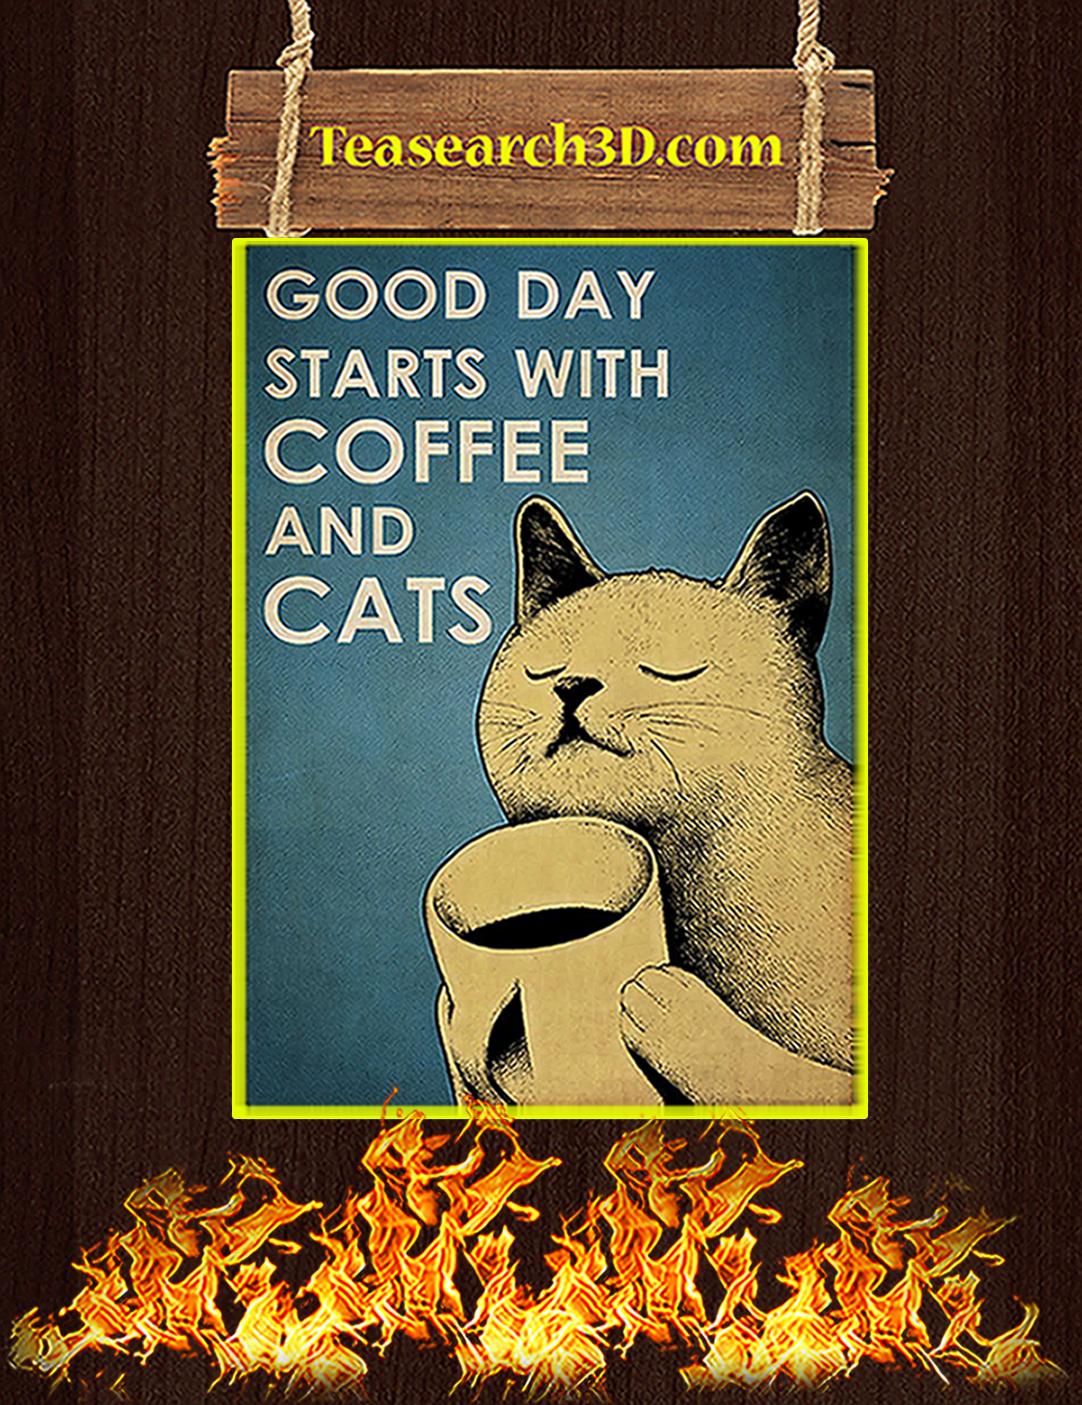 Good day starts with coffee and cats poster A2